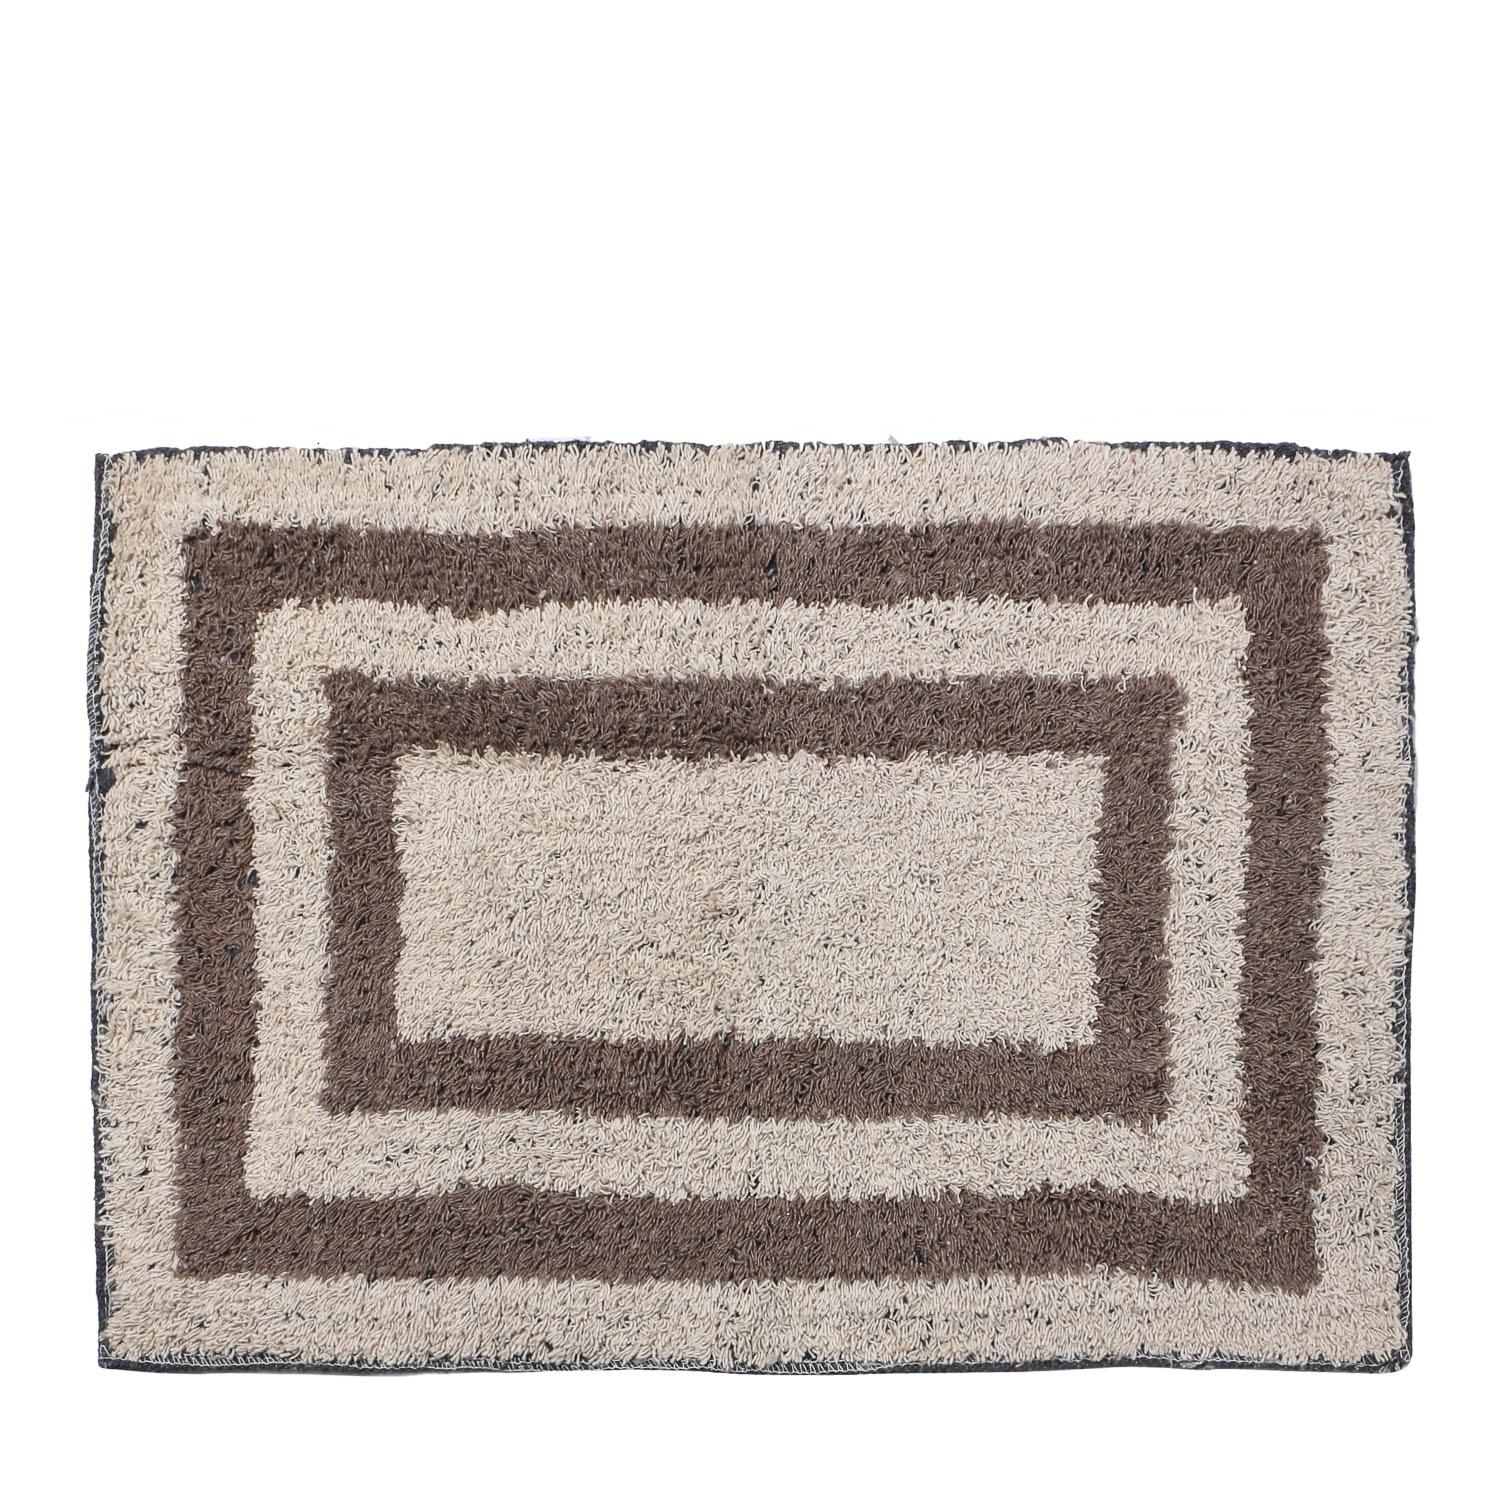 Home Accents Collection Bath Mat 60 X 40cm. By The Sm Store.